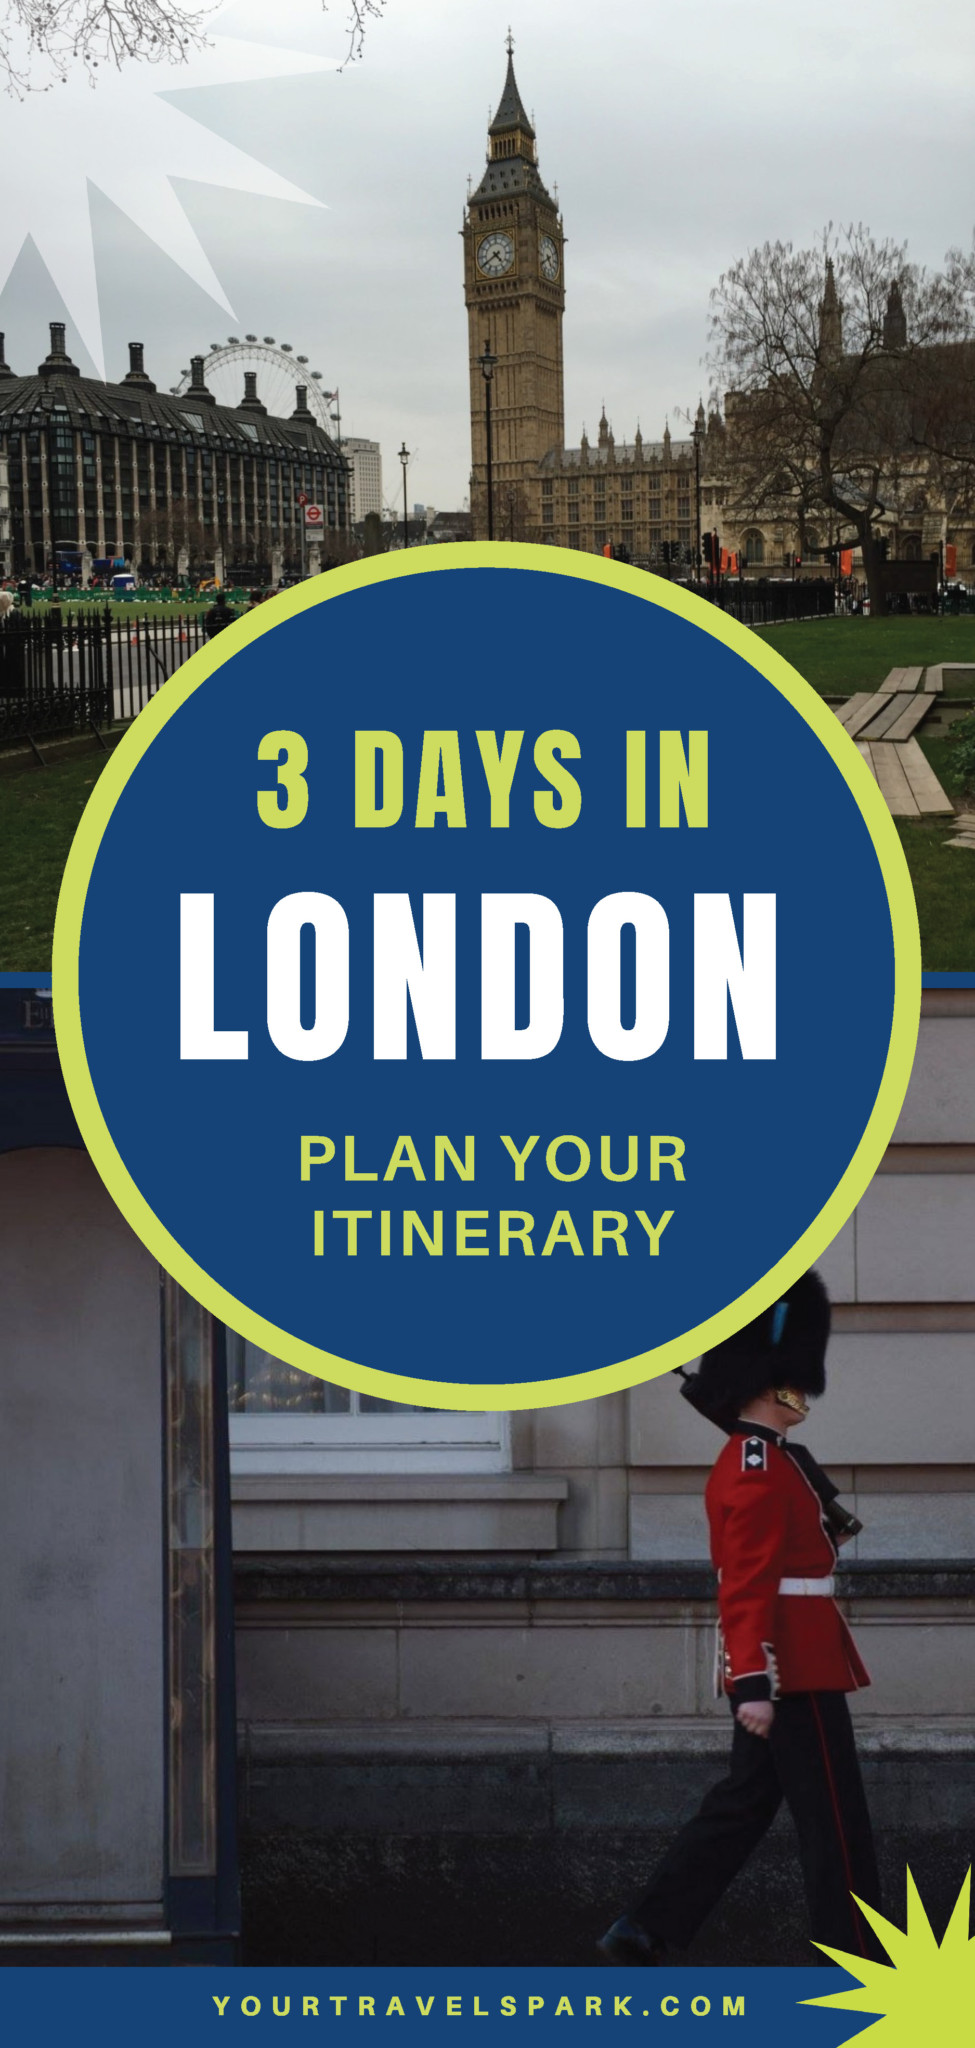 How to spend 3 days in London, UK - plan your itinerary for England. #england #uk #london #3daysin #3daysinlondon #whitecliffs #wimbledon #windsor #hydepark #kensingtonpalace #buckingham #buckinghampalace